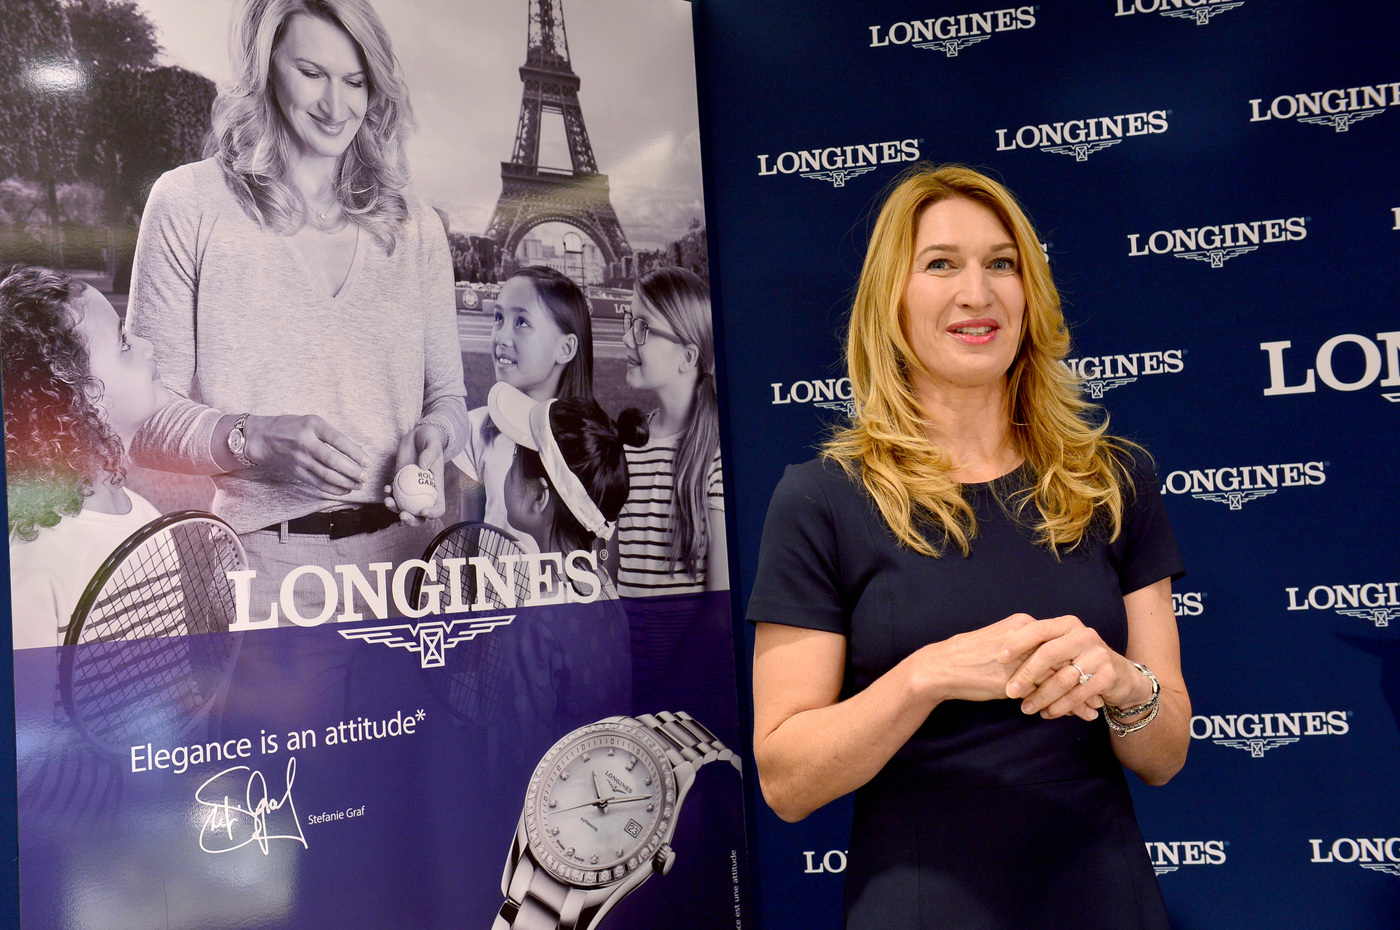 Longines Corporate Event: Longines officially inaugurates its first monobrand boutique in France in presence of Ambassador of Elegance Stefanie Graf 3